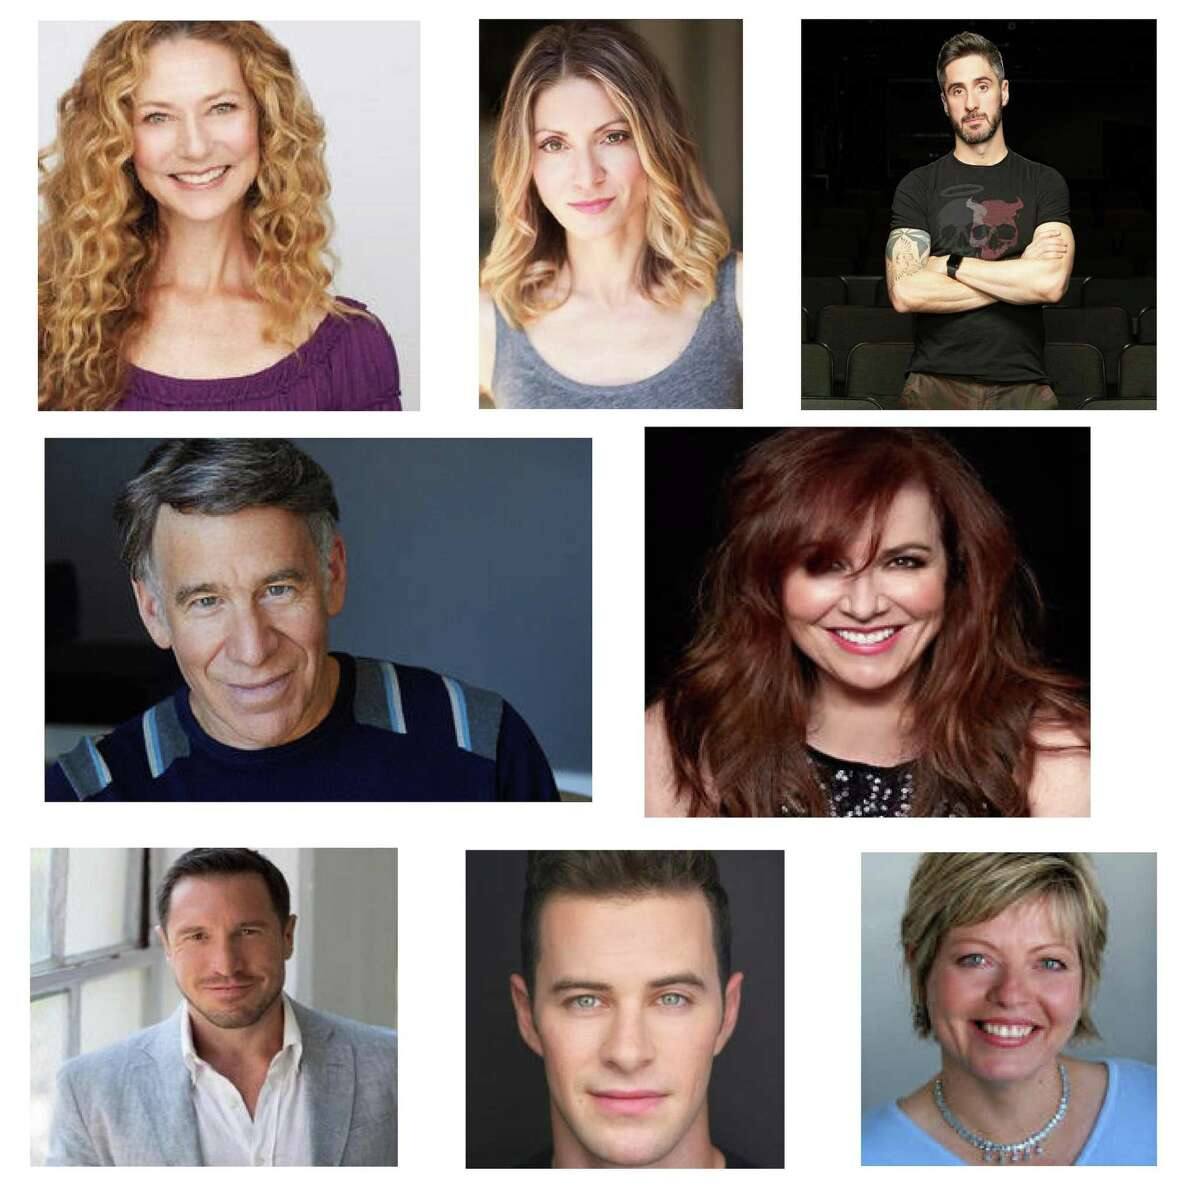 ACT of CT and The Ridgefield Playhouse will livestream a show featuring Broadway performers and others on March 20. The entertainers, from top left, are Juliet Lambert Pratt, Laura Woyasz and Bryan Perri. From middle left are Stephen Schwartz and Debbie Gravitte. From bottom left are Matt Farnsworth, Sam Gravitte and Daniela Sikora.